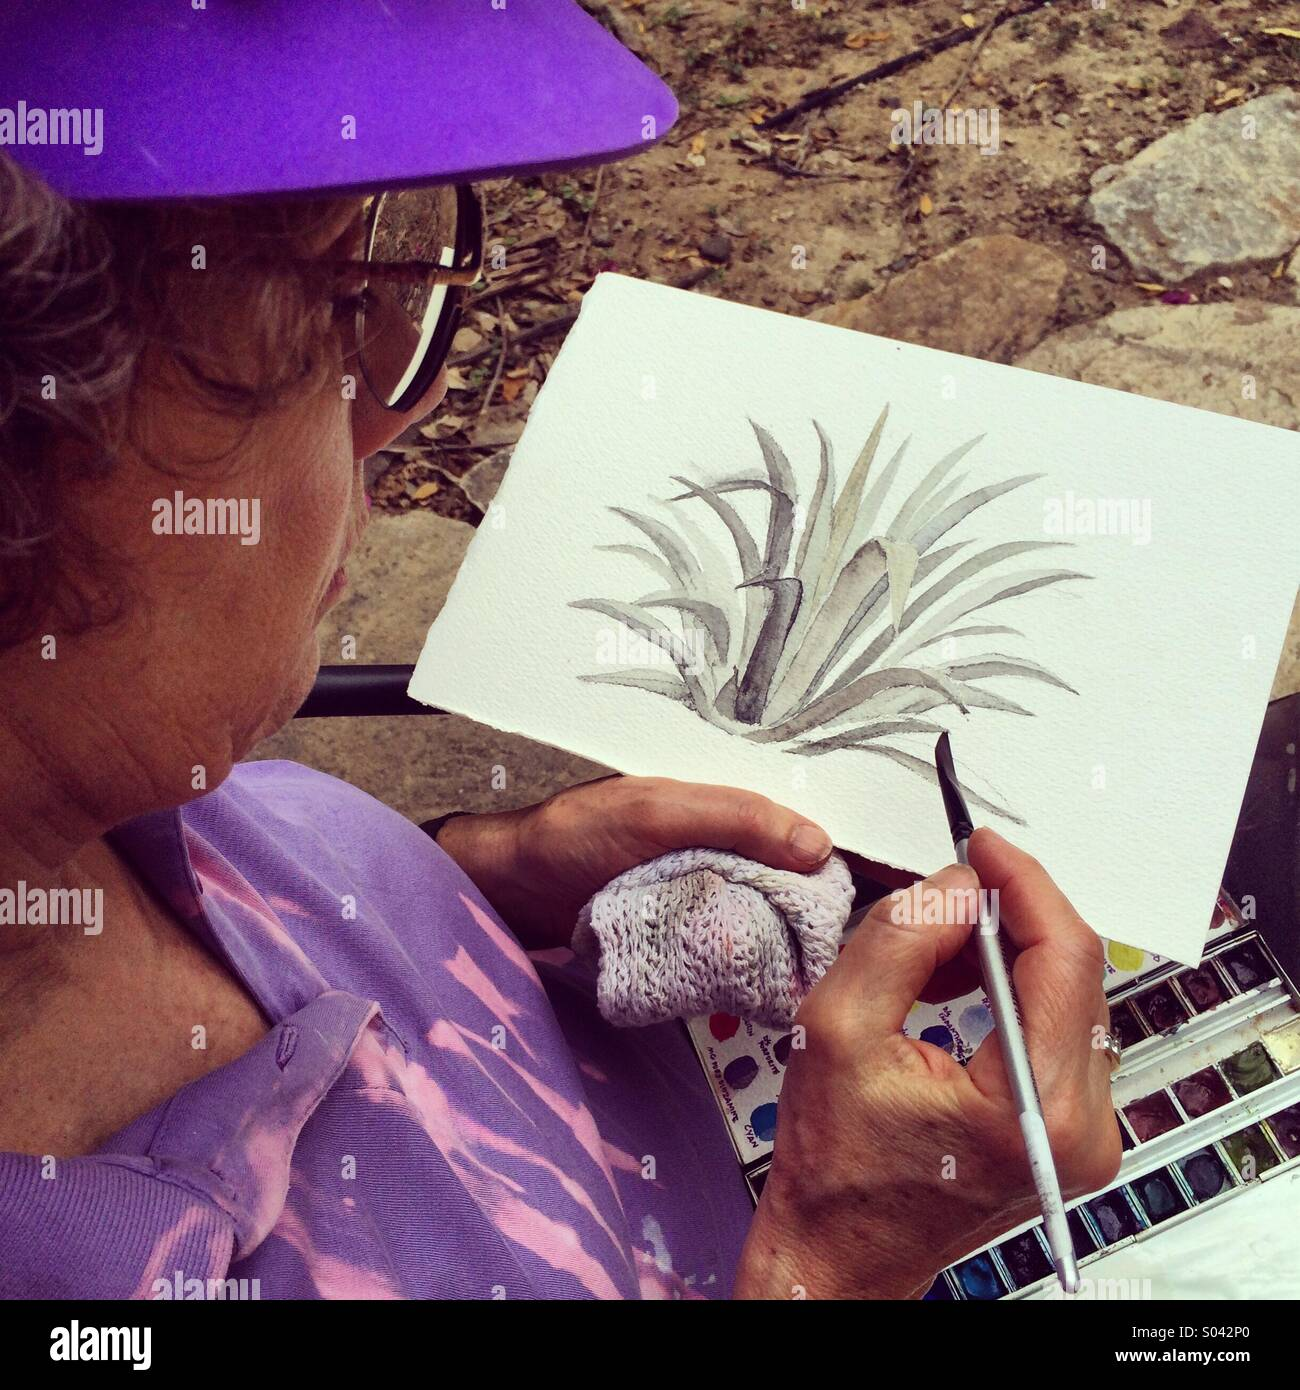 Martha Hill, Woman artist painting agave leaves in watercolors.  Chaparri Reserve, Peru Stock Photo